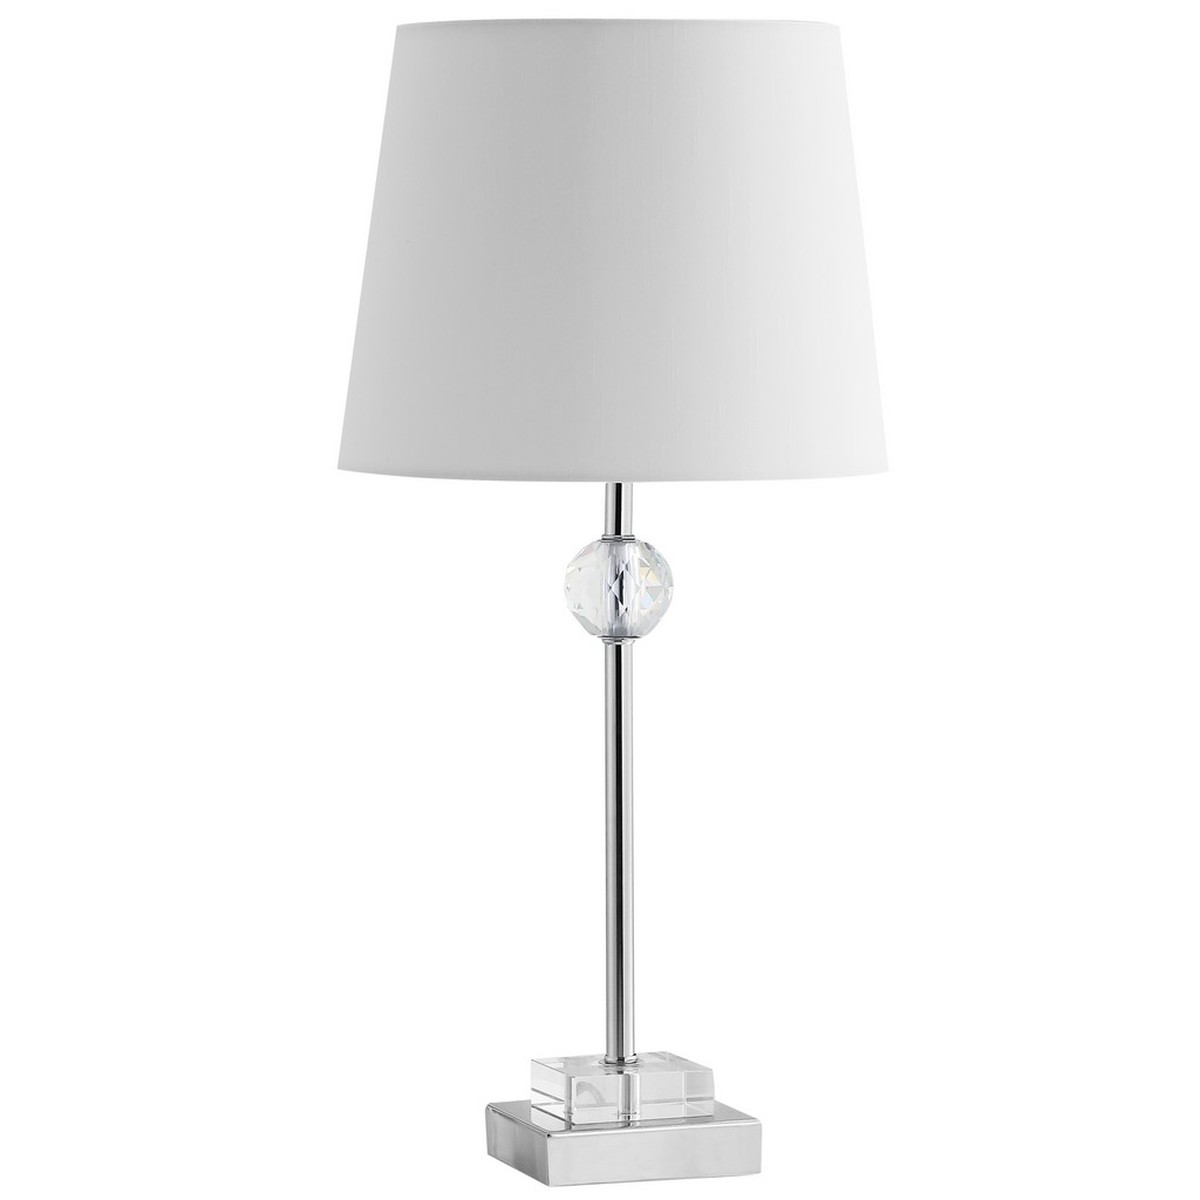 Tbl4096a Table Lamps Lighting By Safavieh